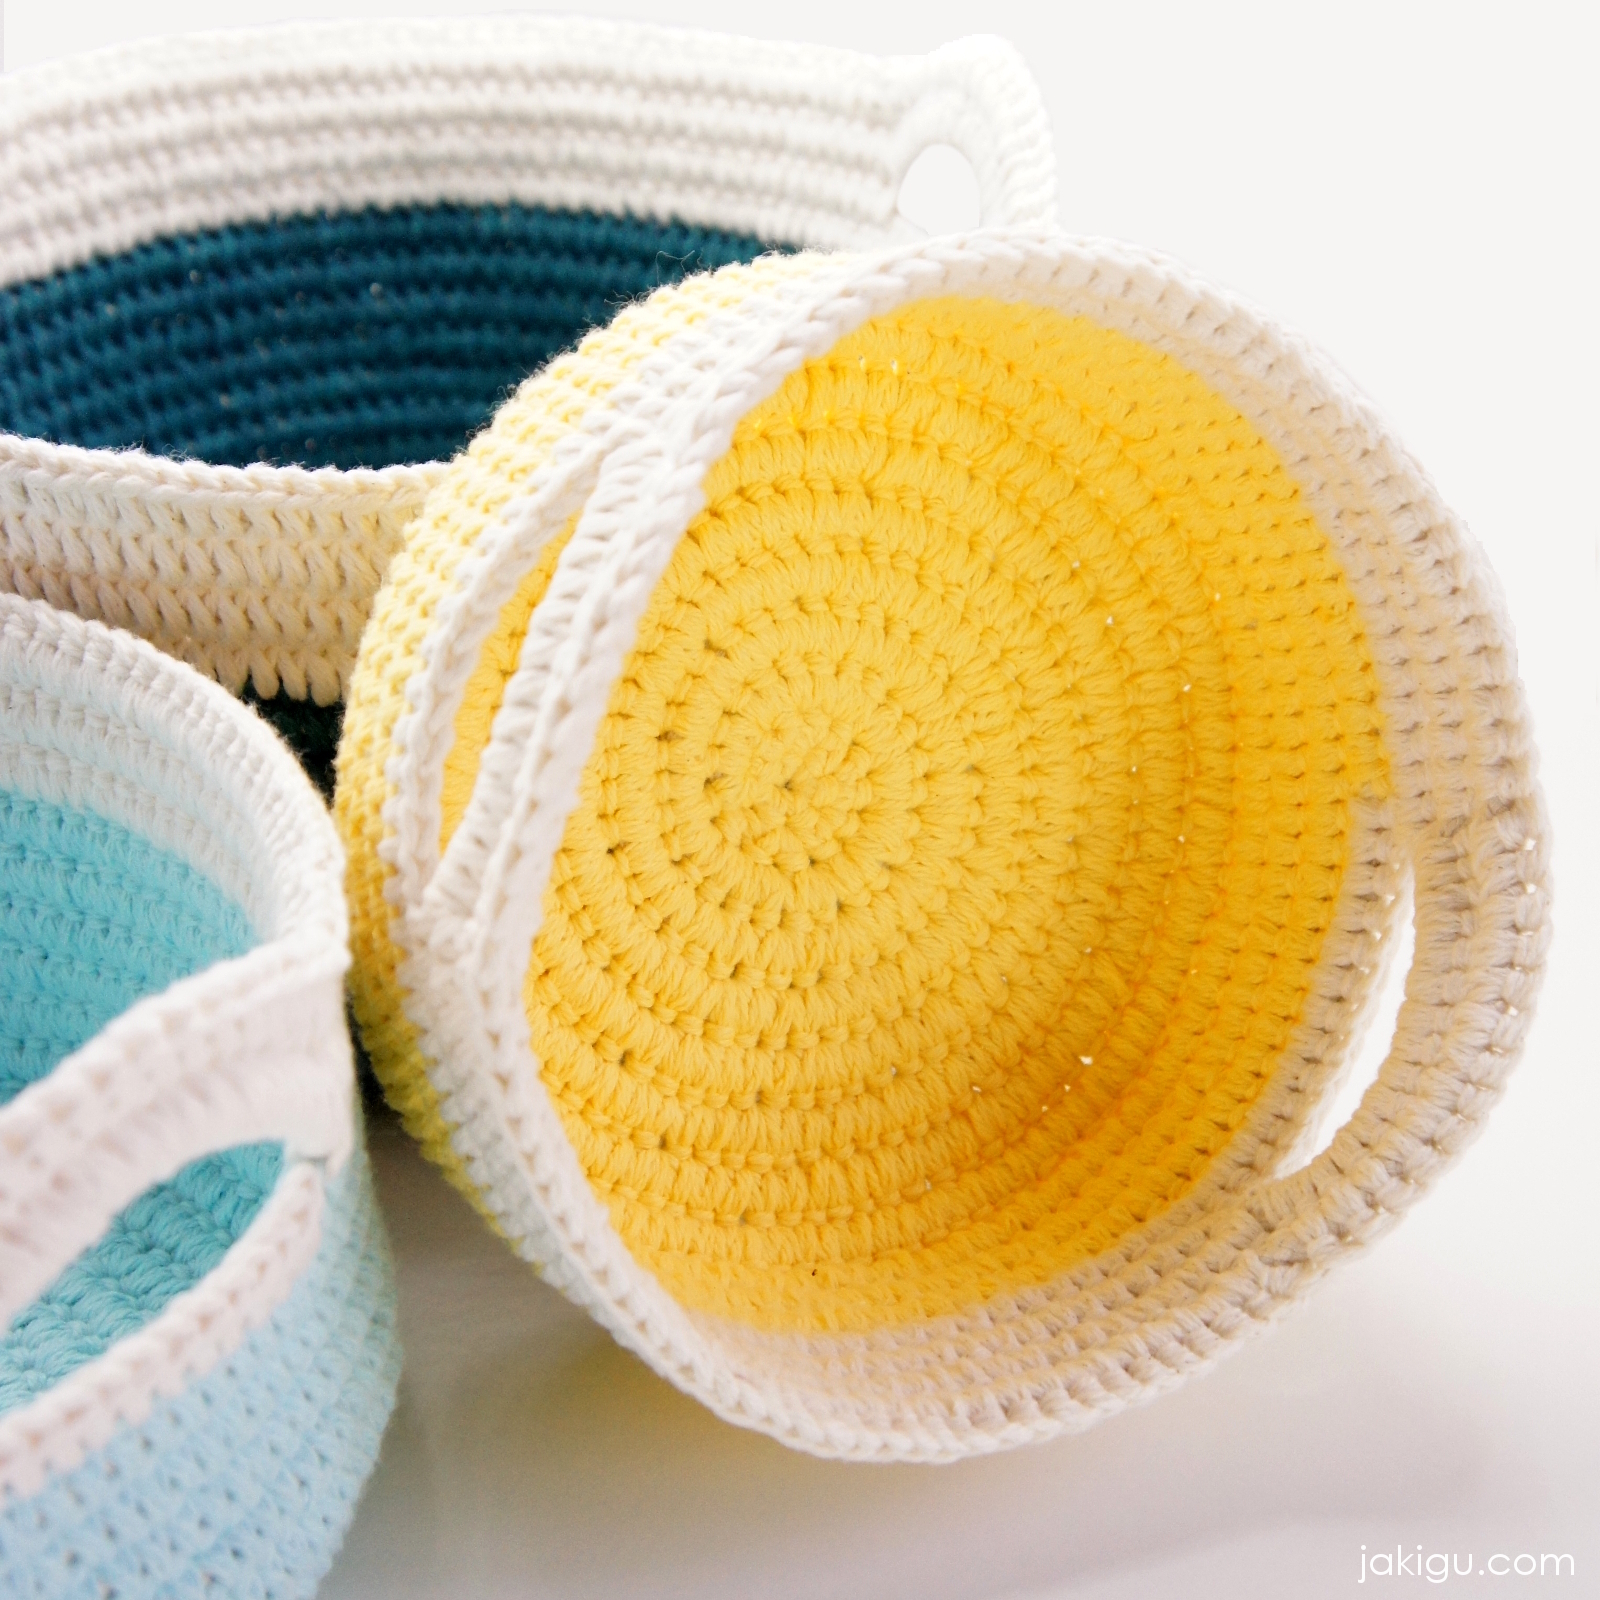 Modern crochet baskets - quick and easy crochet project